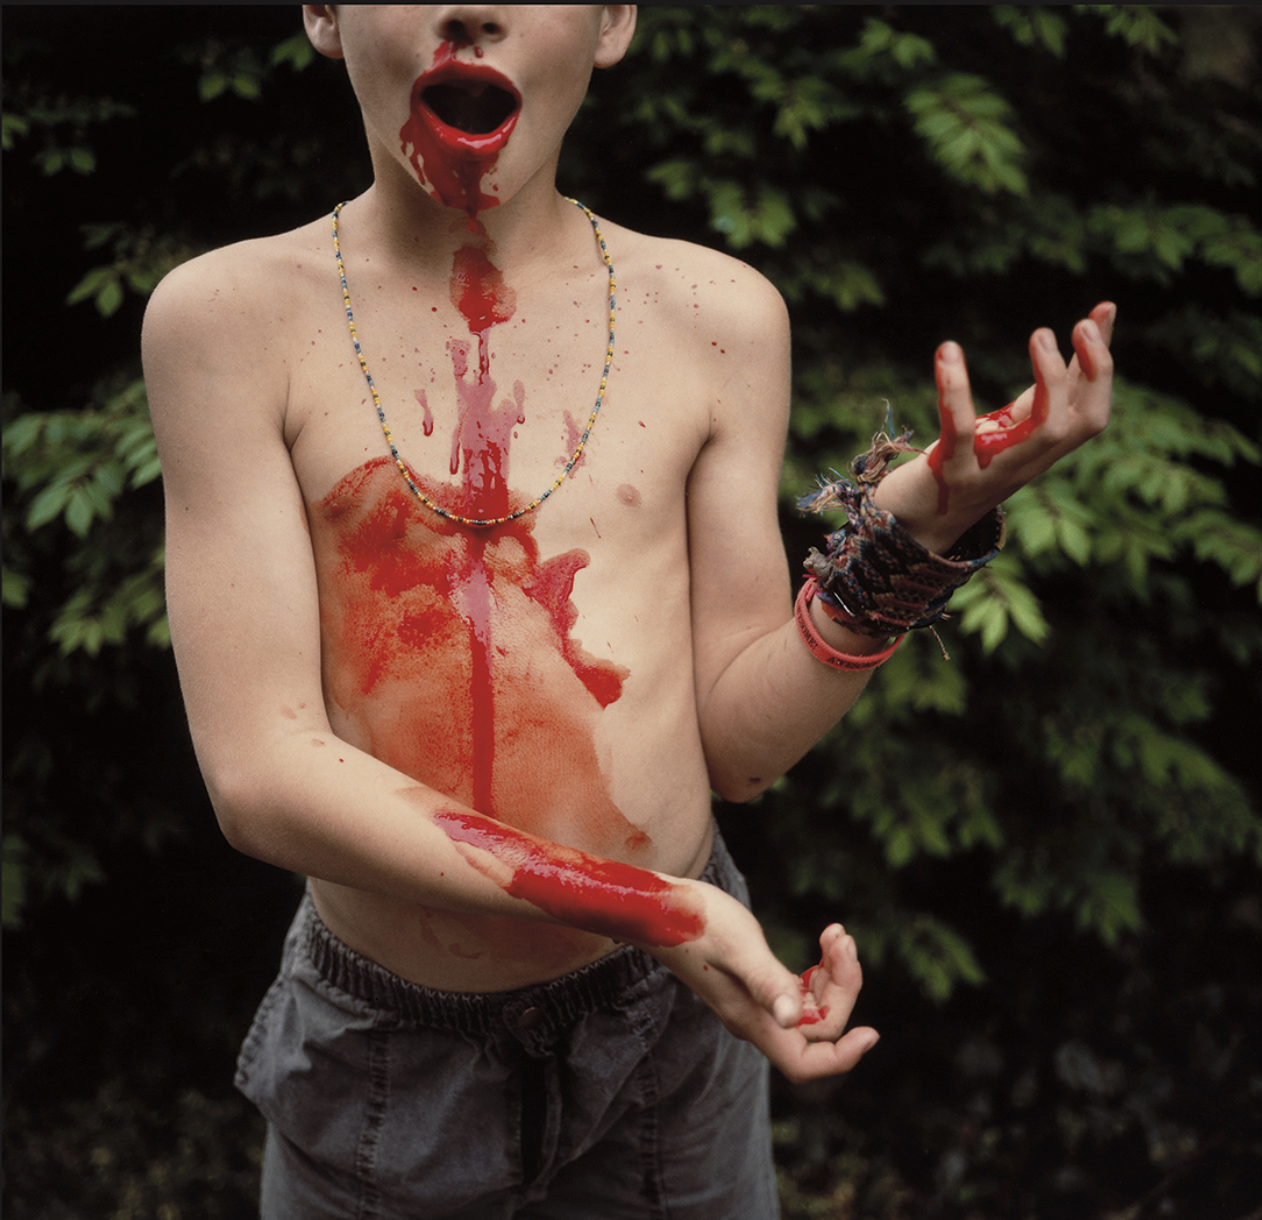 Bloody Nose 1991 Sally Mann Silver dye bleach print. Private collection. © Sally Mann